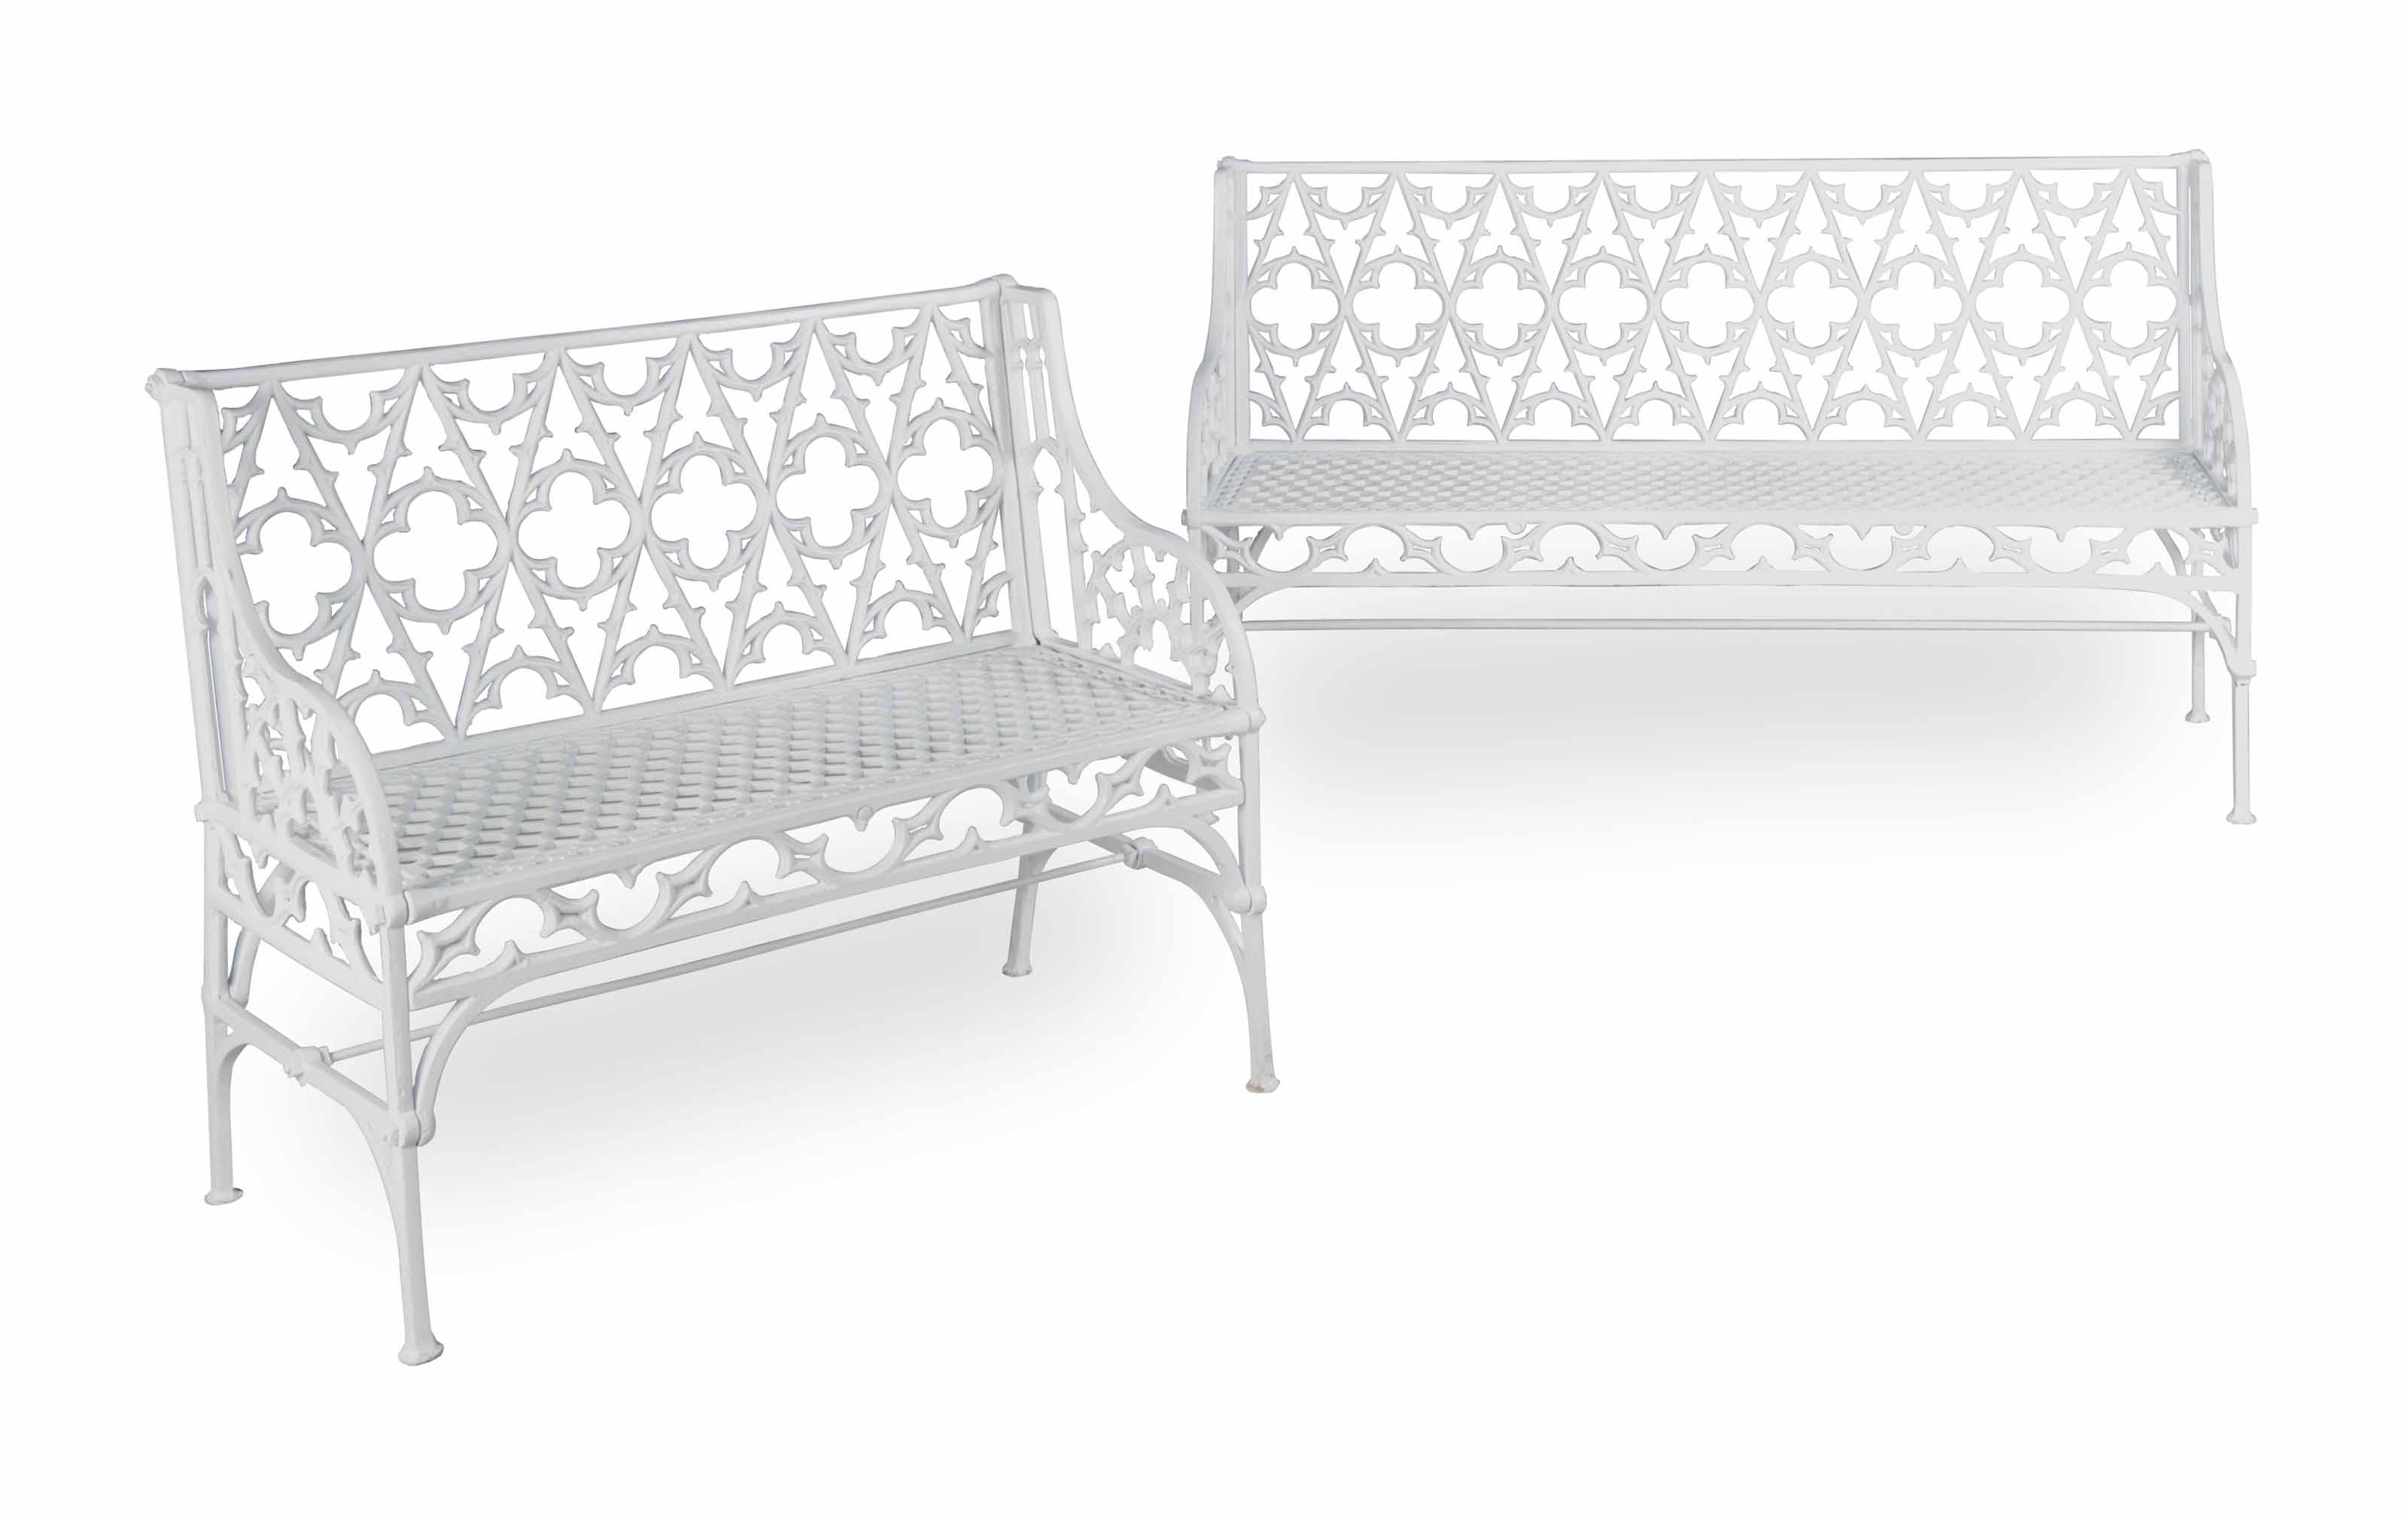 TWO FRENCH CAST-IRON GOTHIC PA